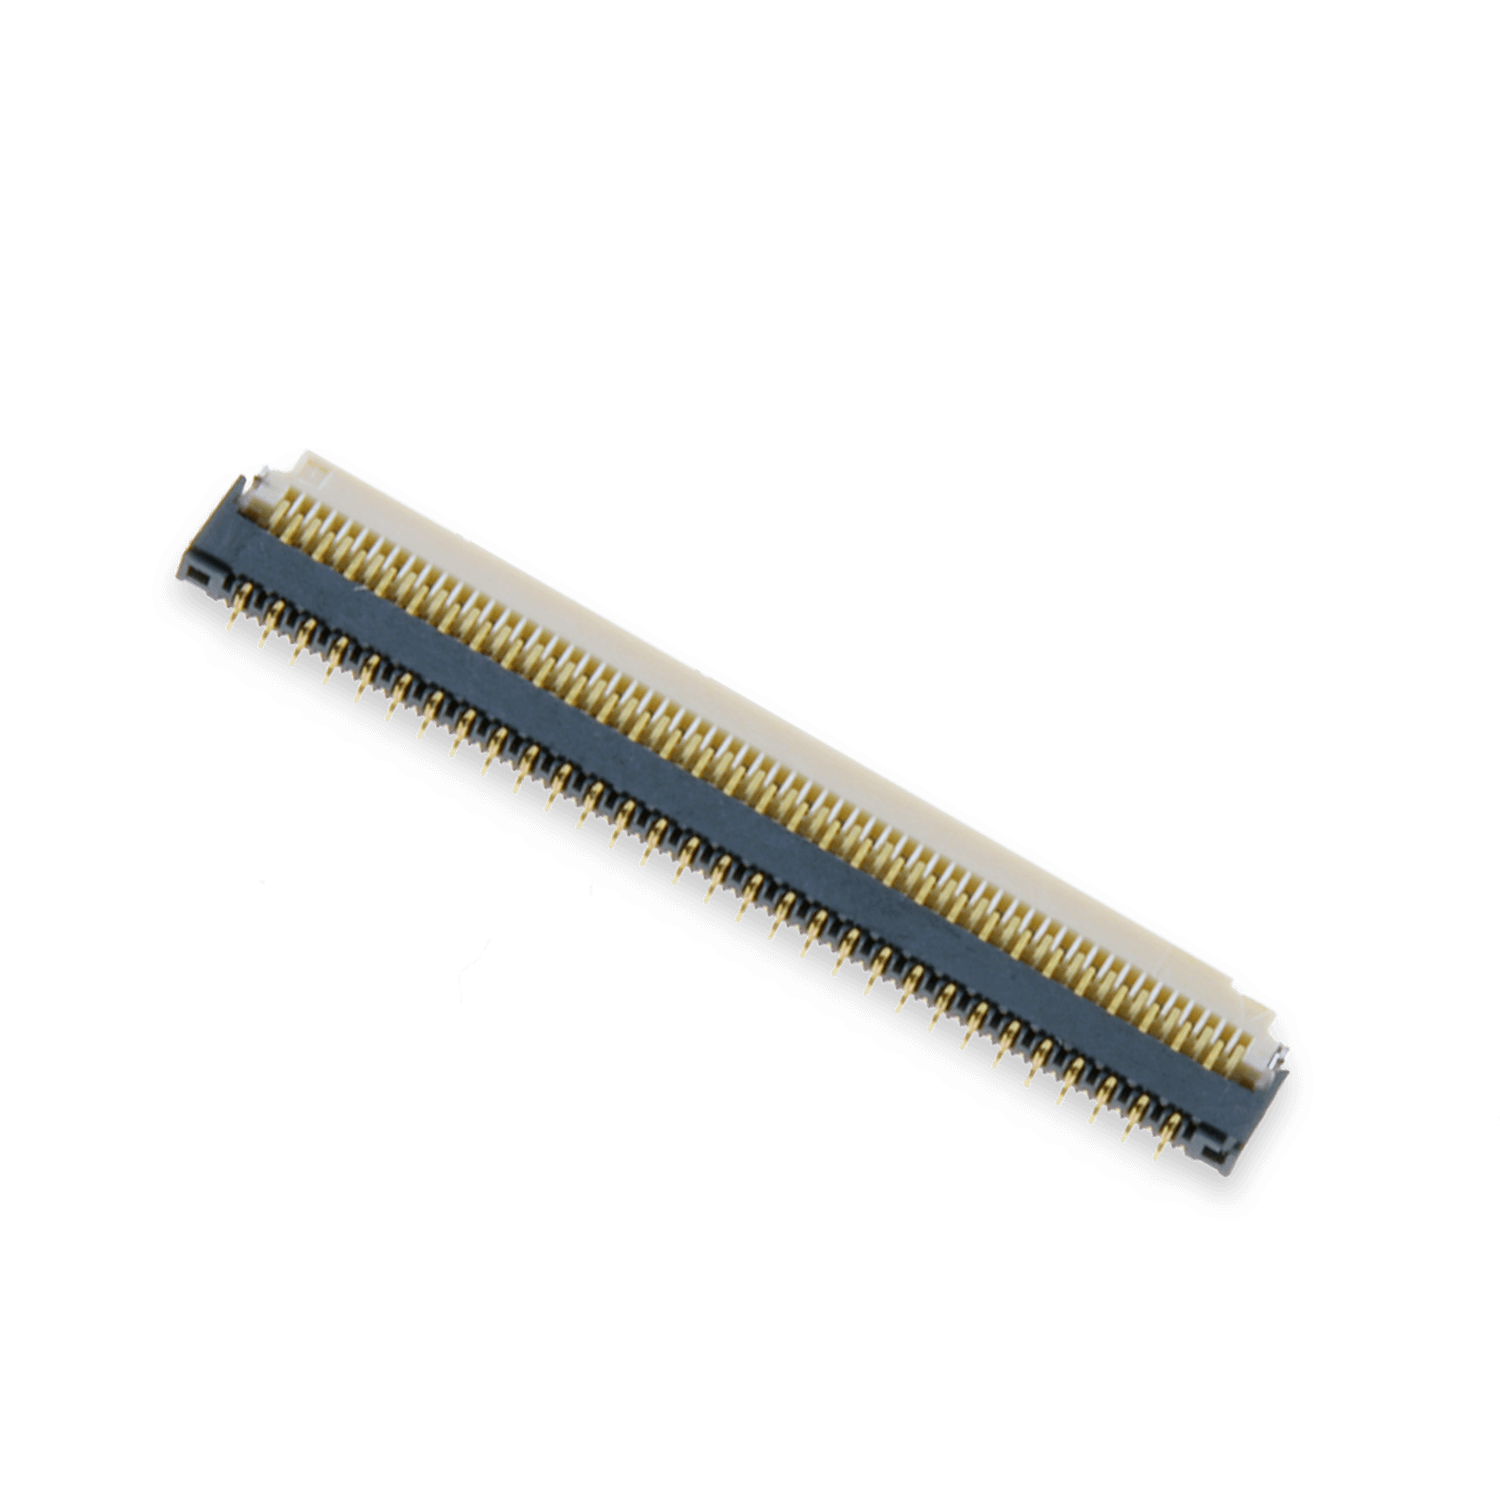 ZIF0361DH – ZIF connector, 0.3 mm pitch, 61 pins, downside contact